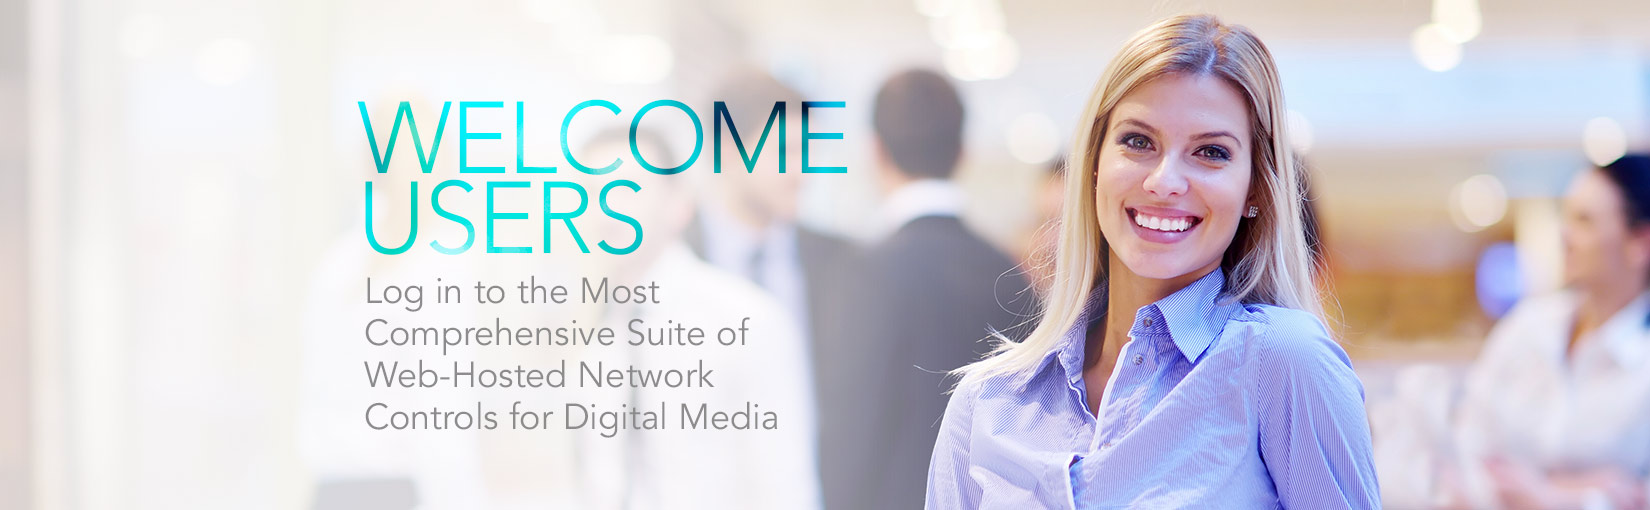 Welcome Users Log in to the Most Comprehensive Suite of Web-Hosted Network Controls for Digital Media.